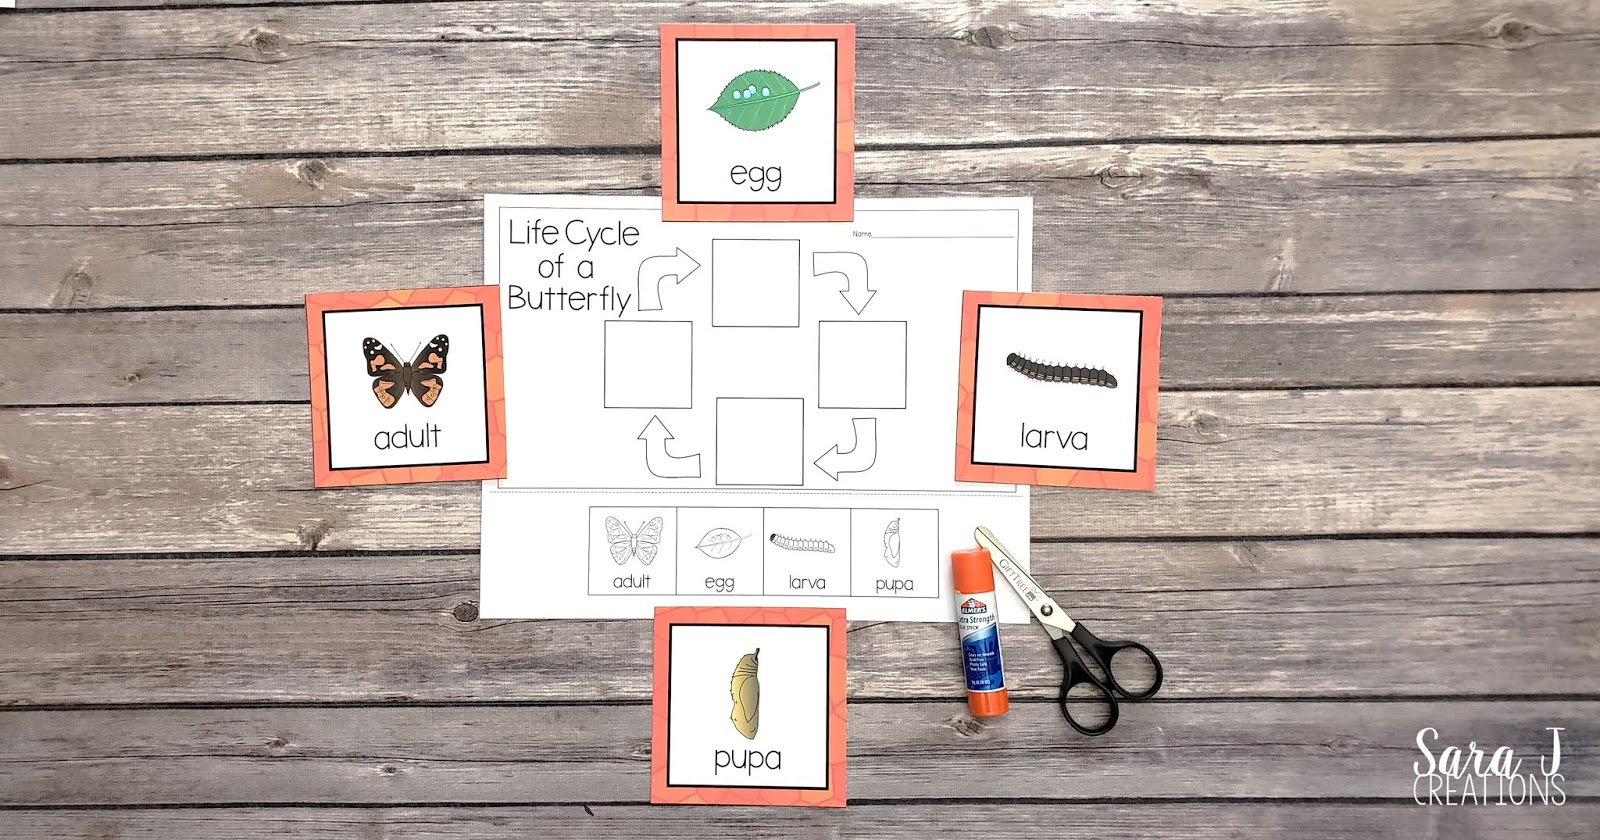 Learn about the life cycle of a butterfly with these free printables! Practice sequencing the life cycle with these cards and then complete a cut and glue activity.